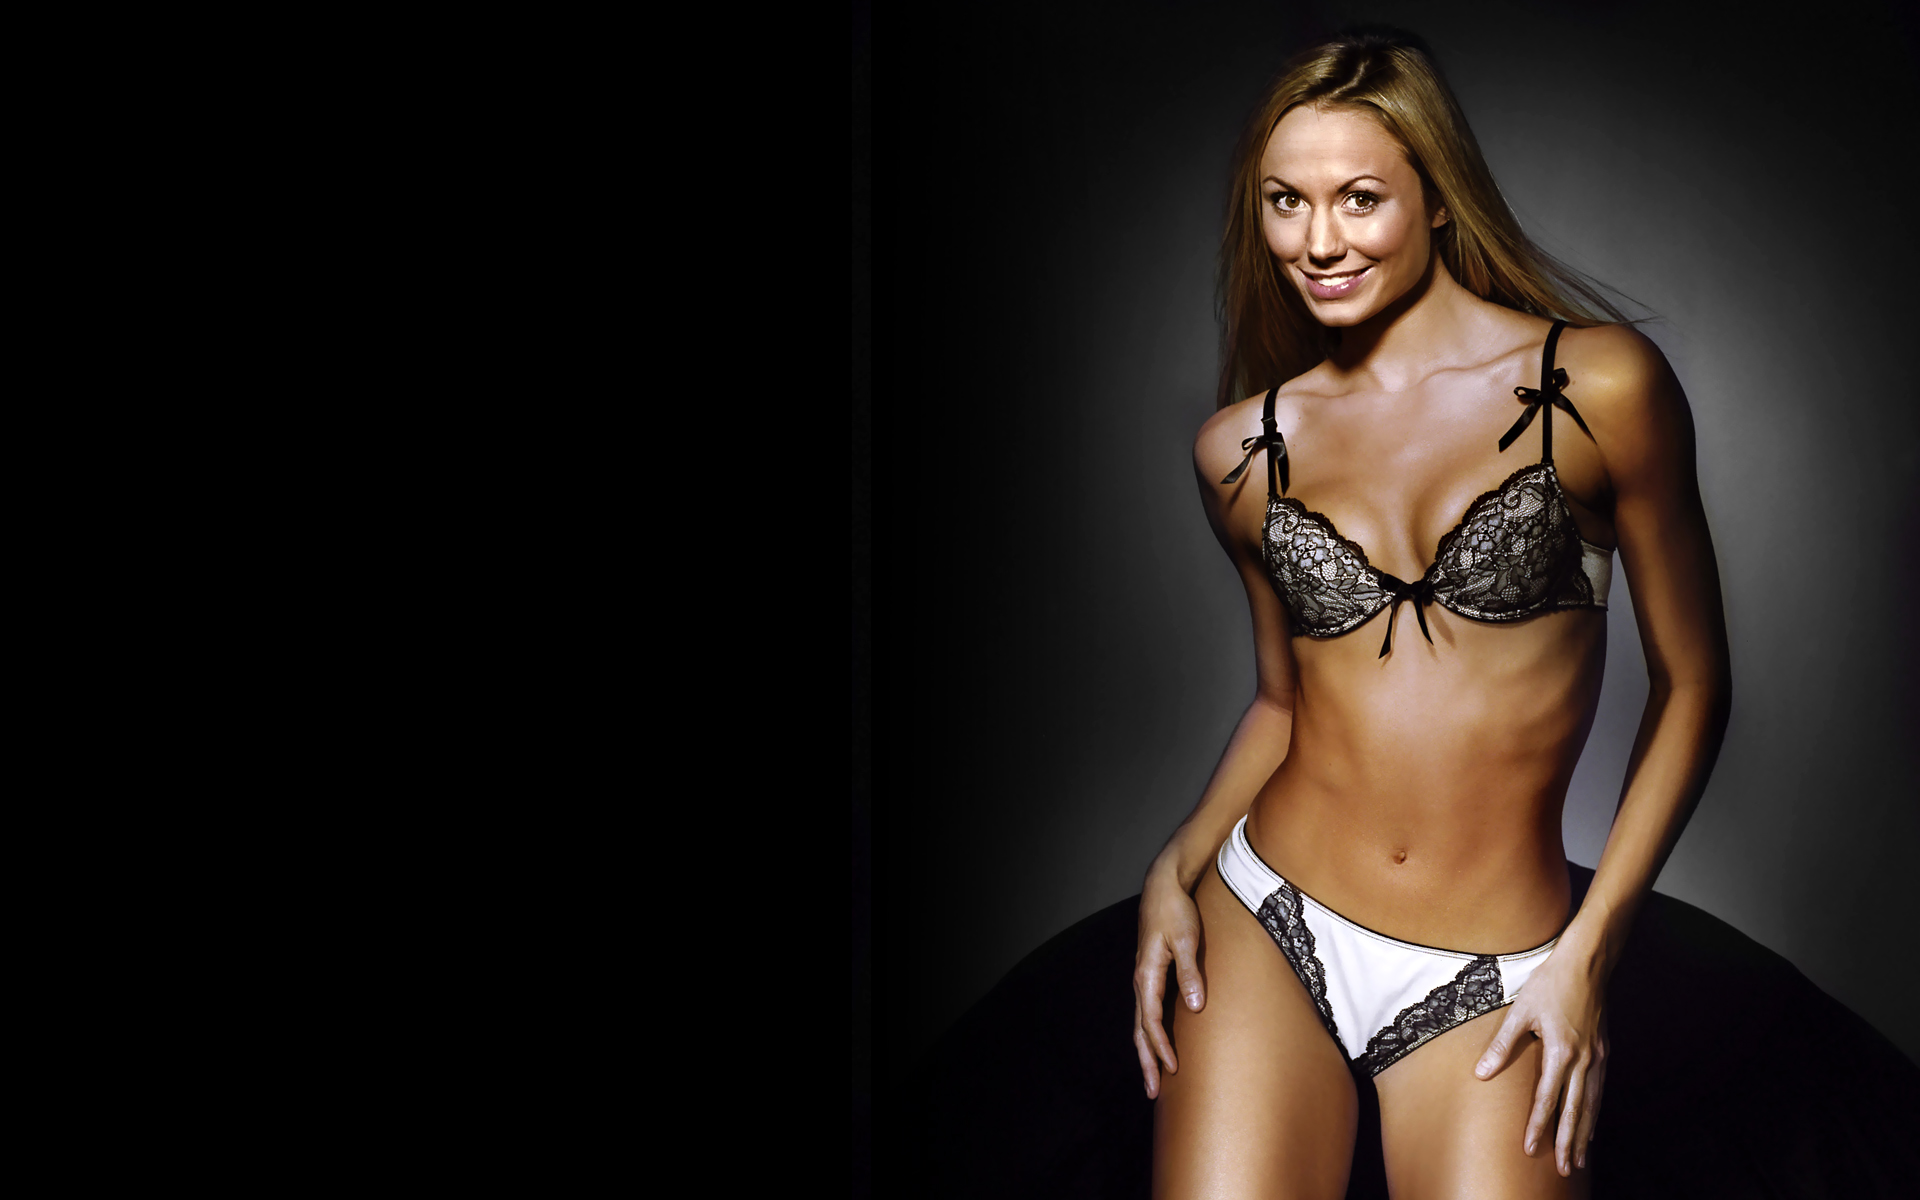 stacy keibler 1440x900 wallpapers - photo #36